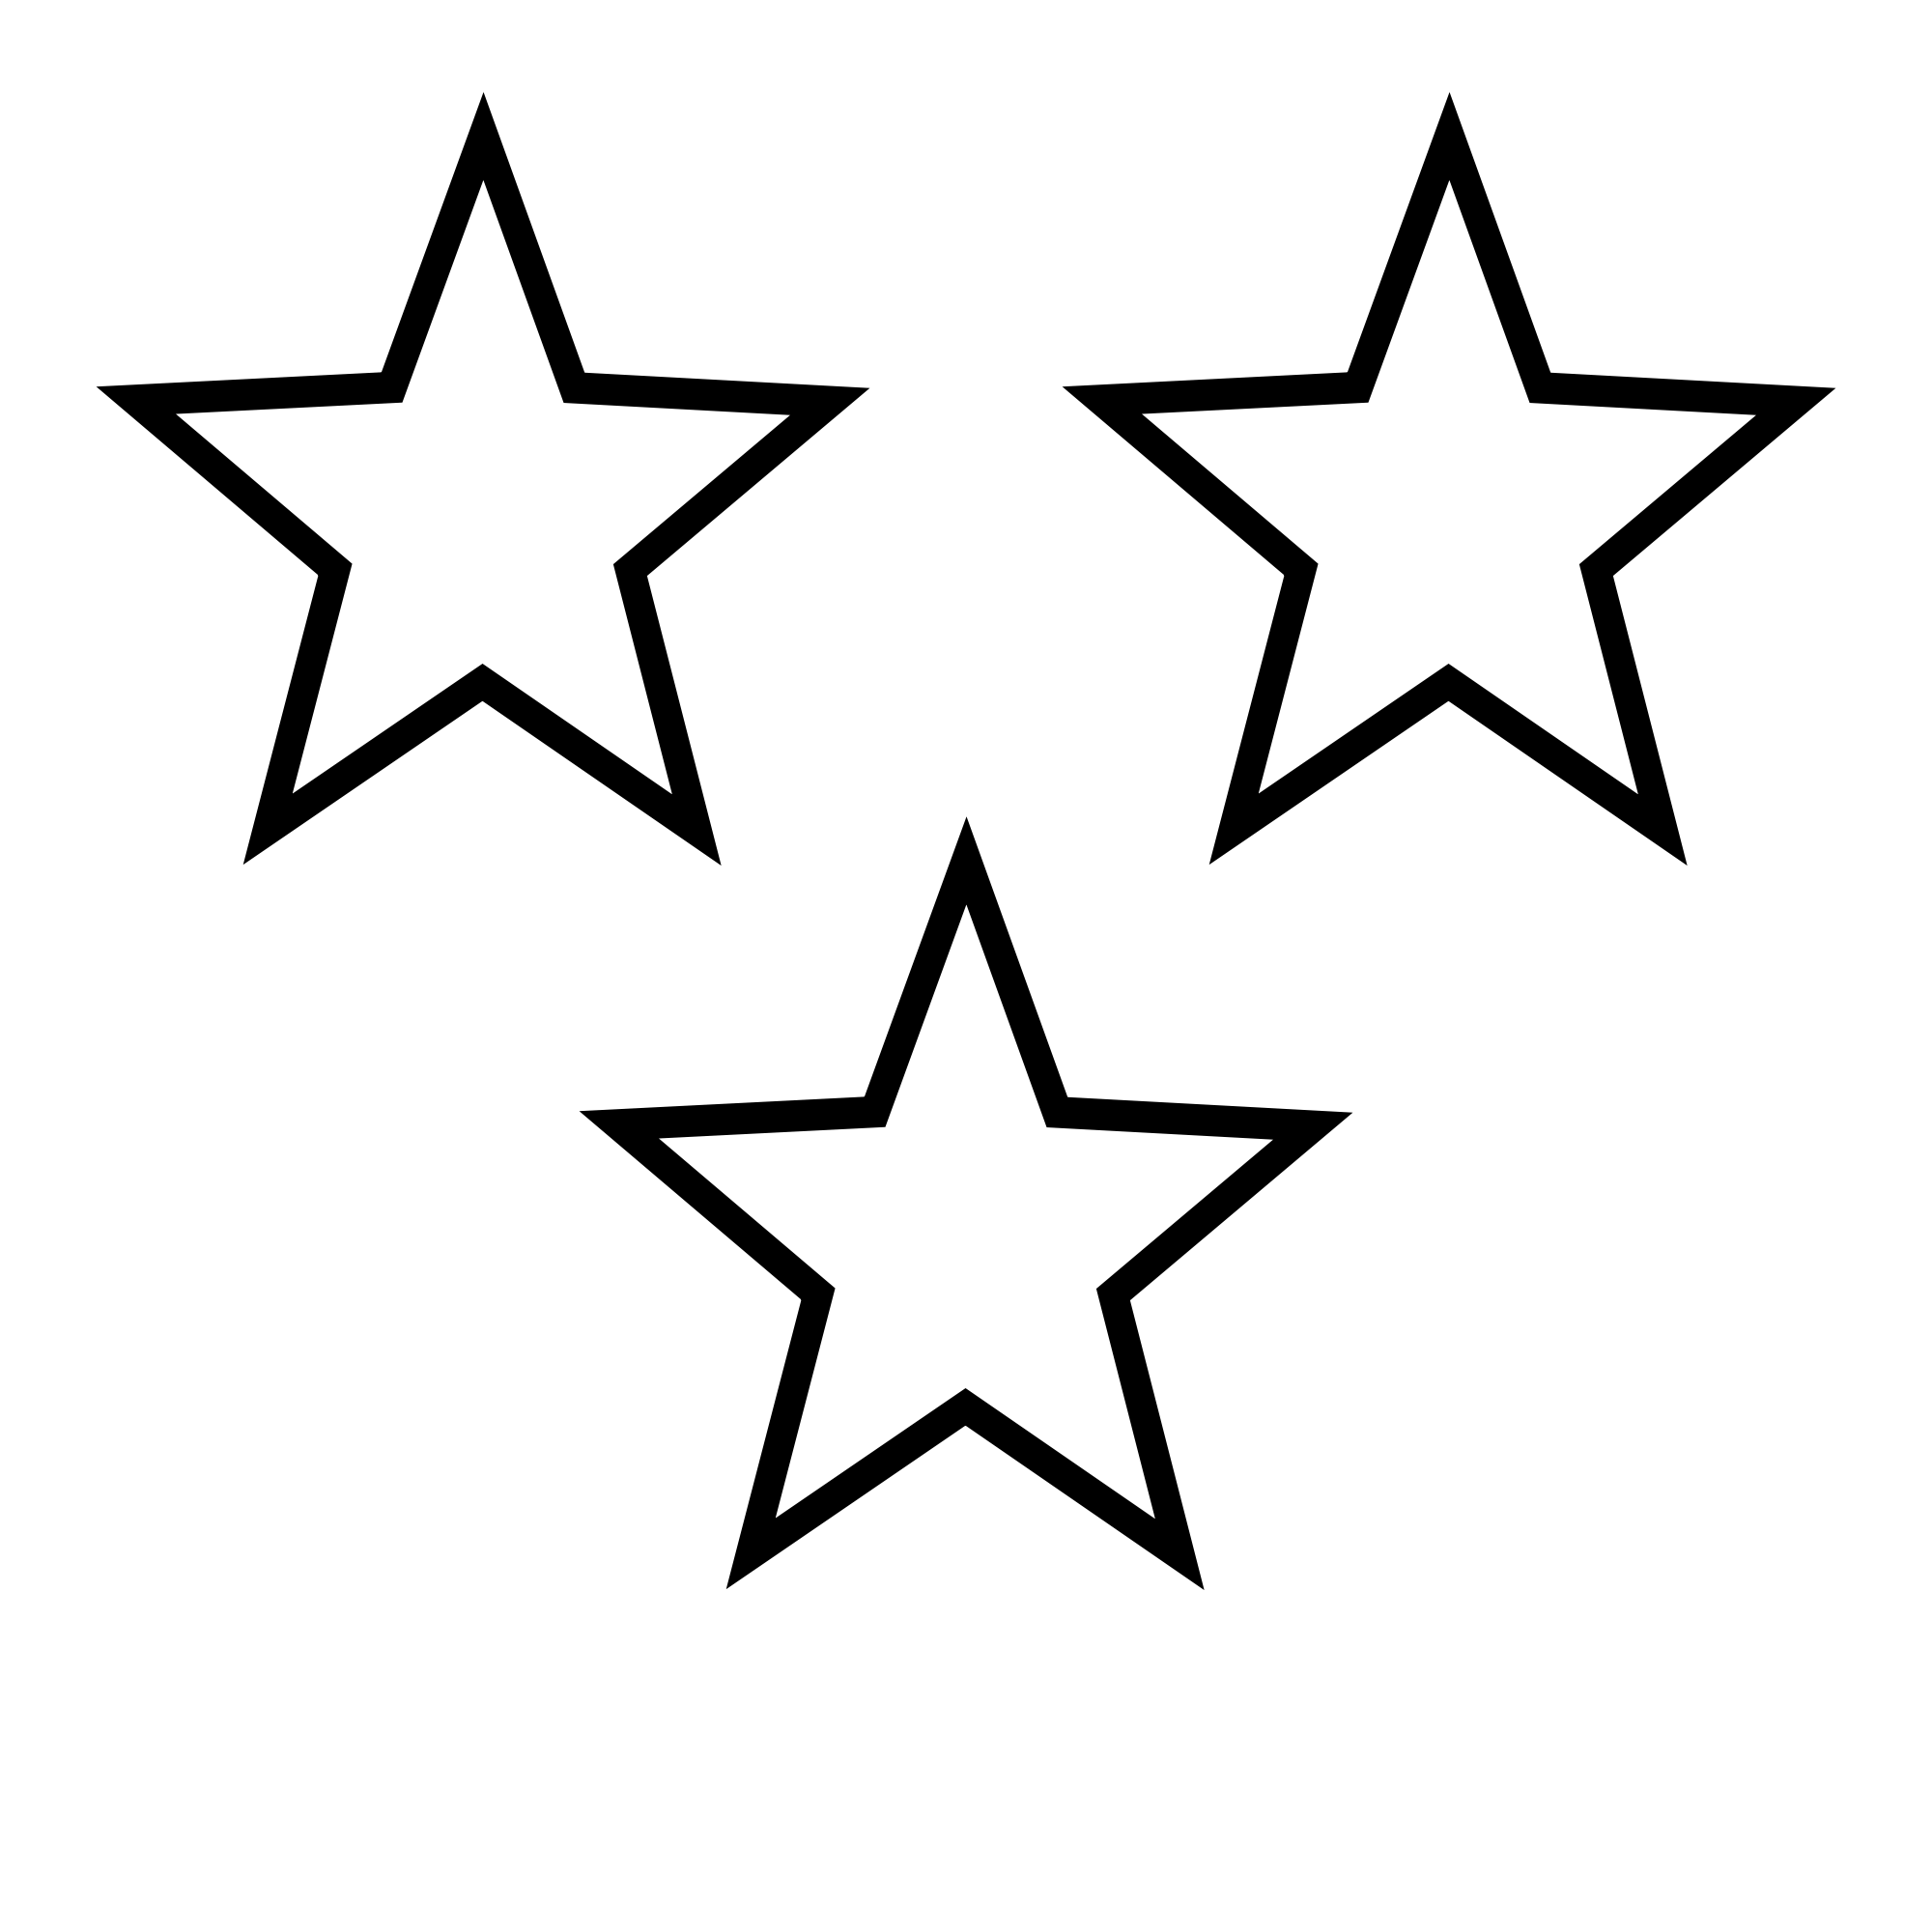 Star student clipart black and white banner stock File:White Stars 3.svg - Wikimedia Commons banner stock